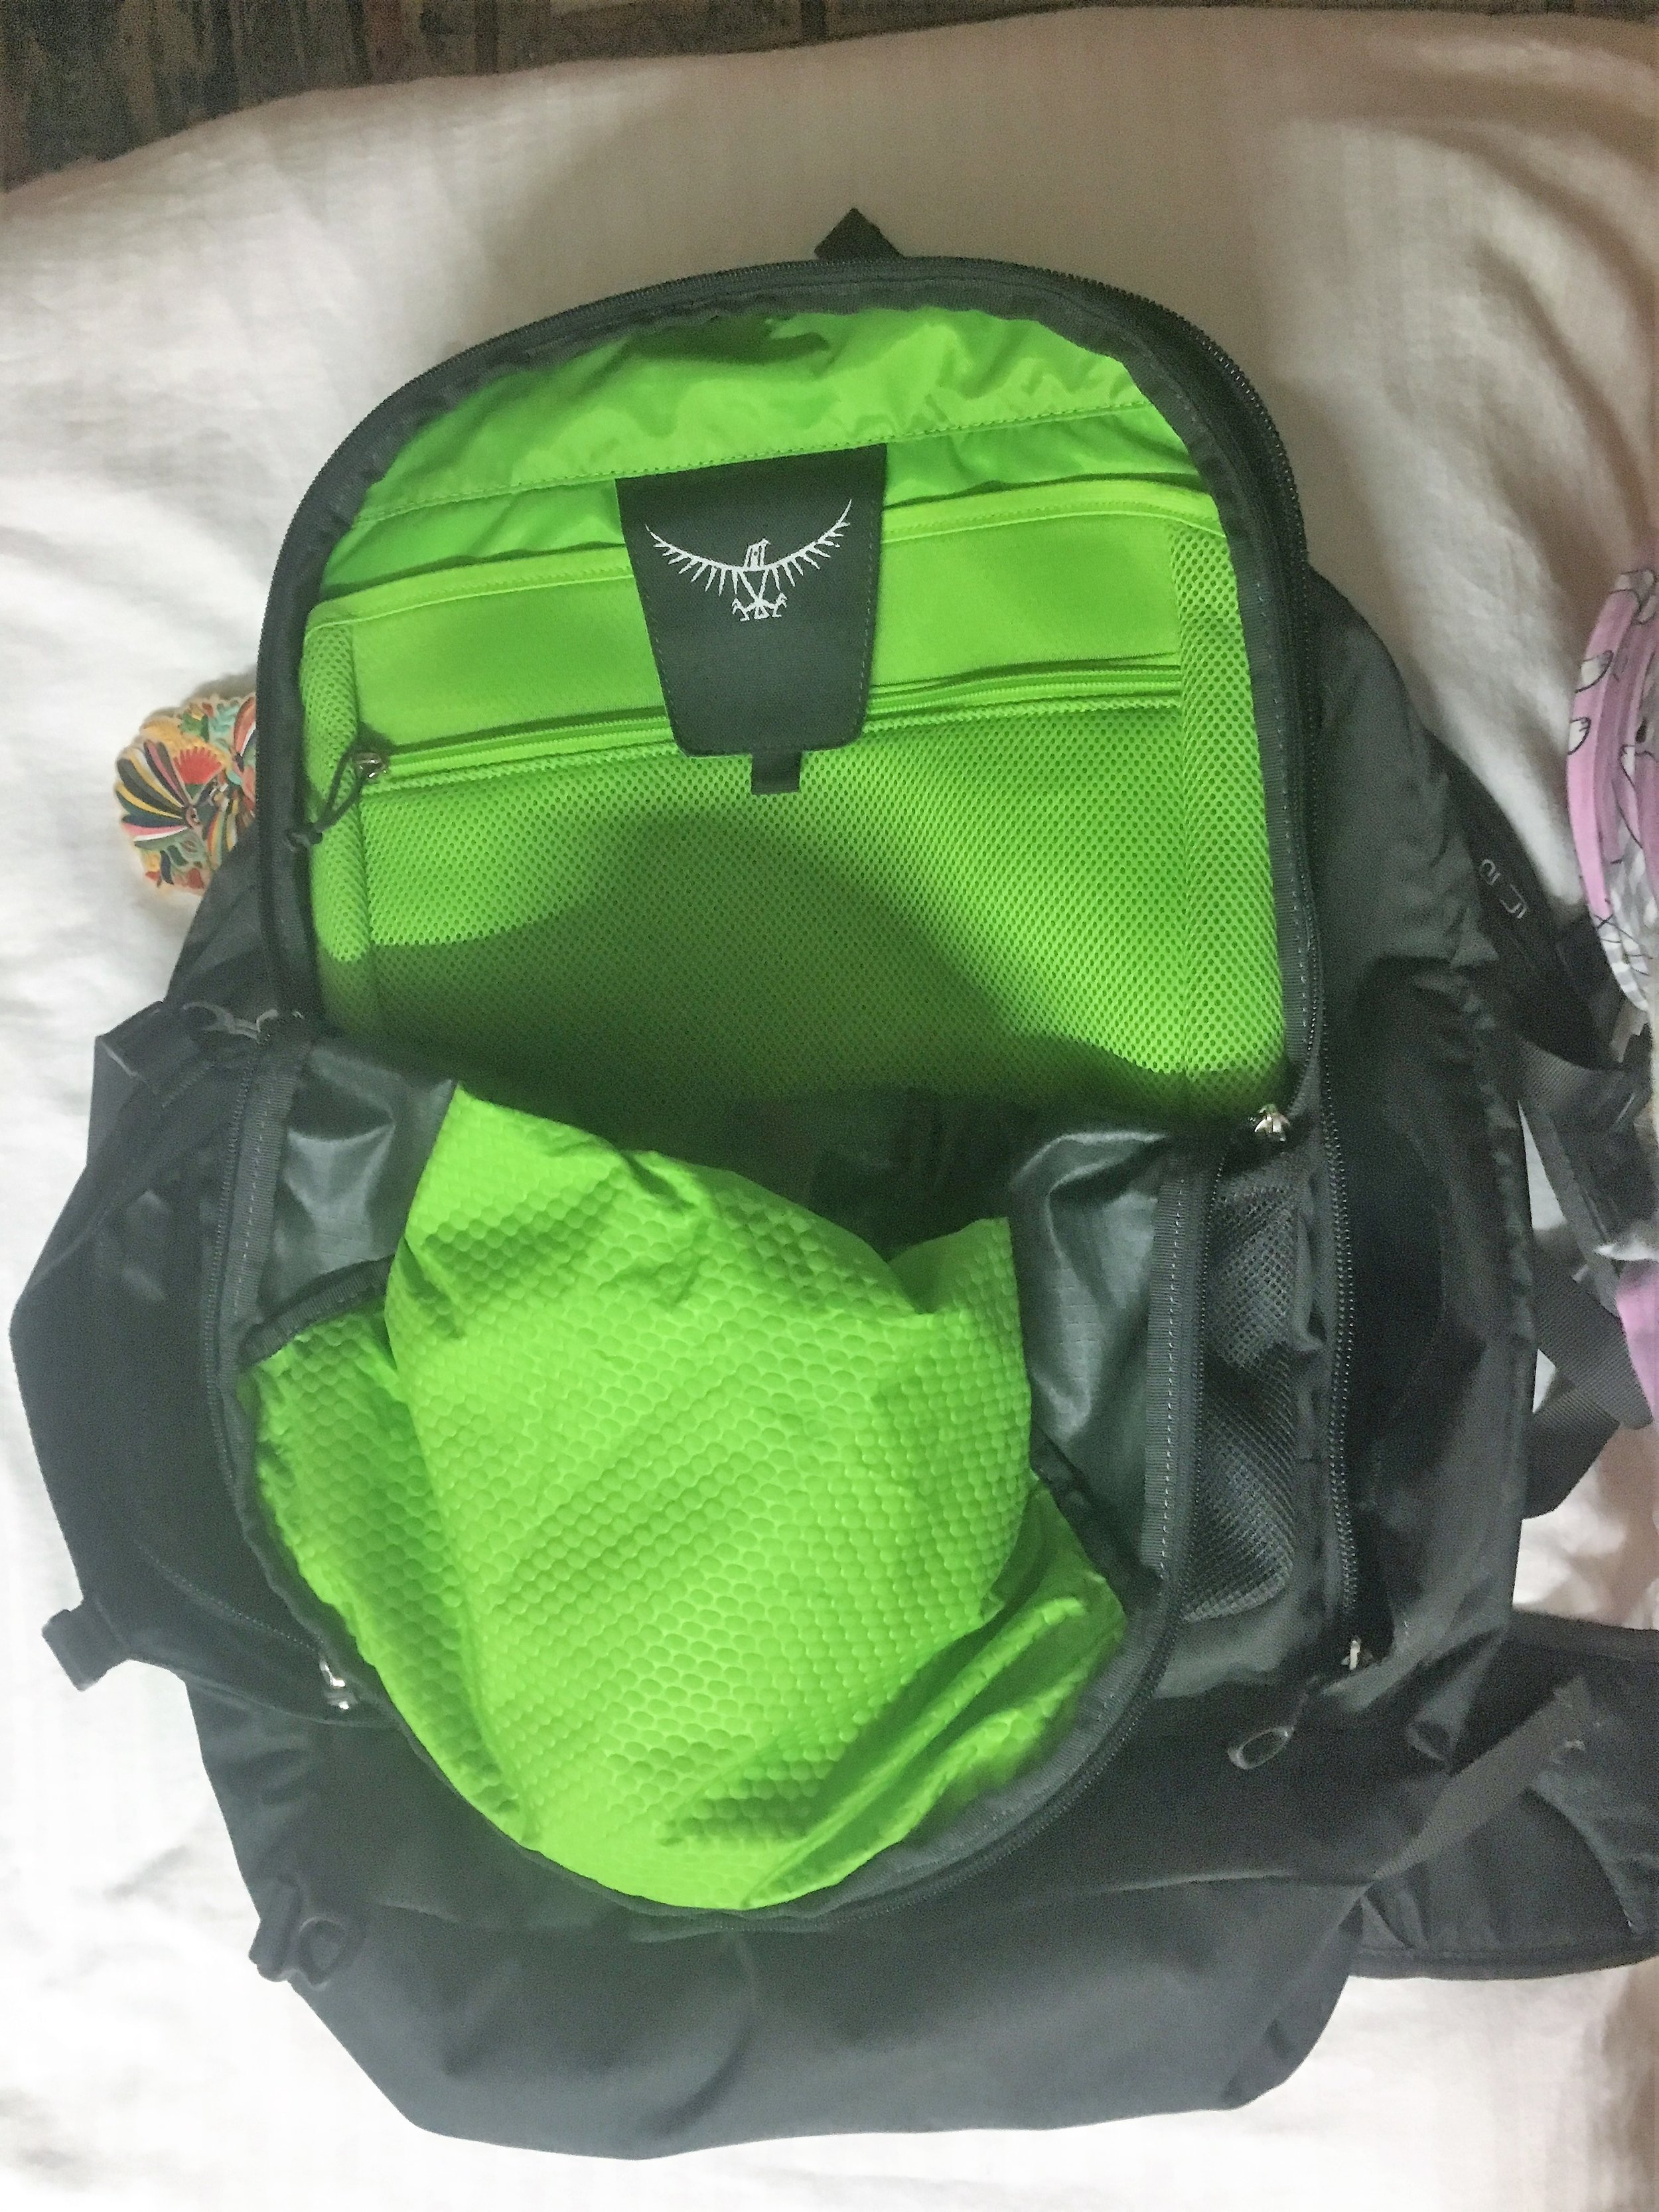 Bag unzipped showing the smaller front pocket with padded laptop sleeve at the back